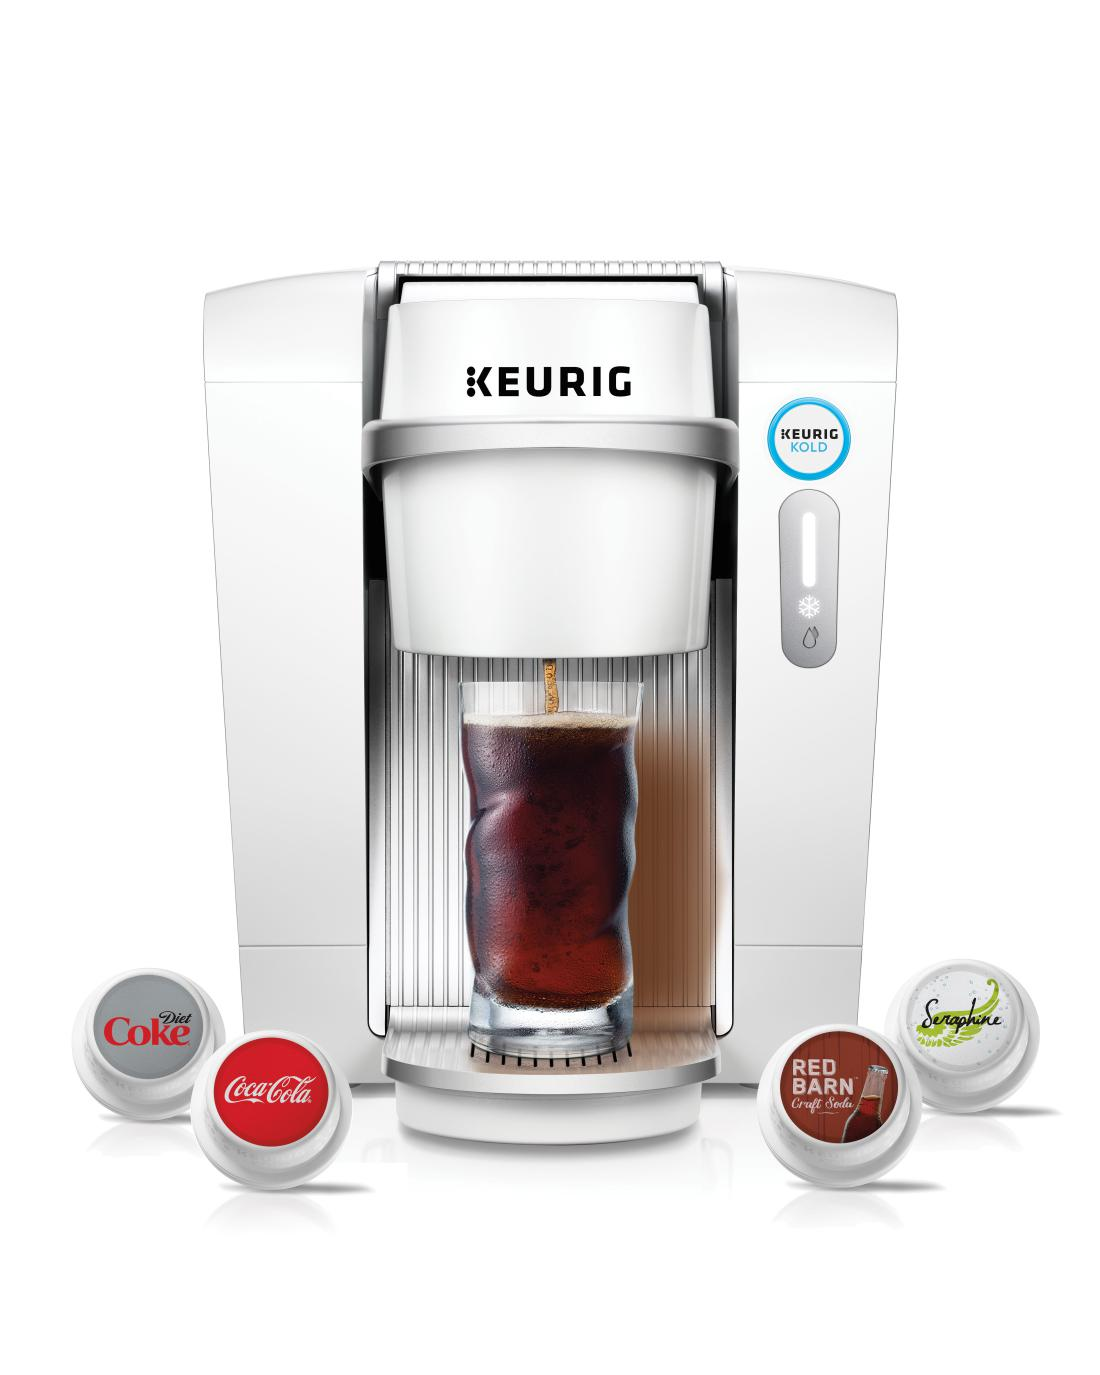 Keurig Kold ain't so hot